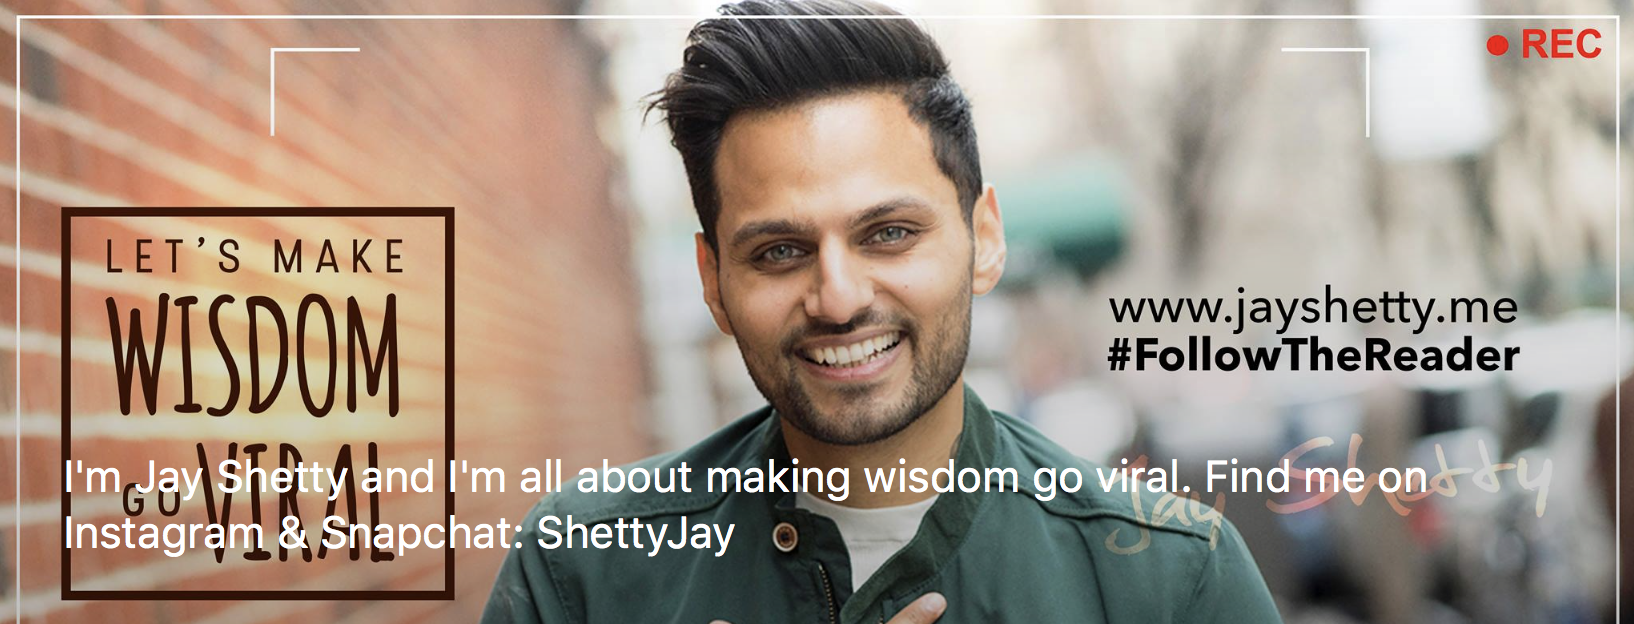 Jay Shetty Facebook Page Image